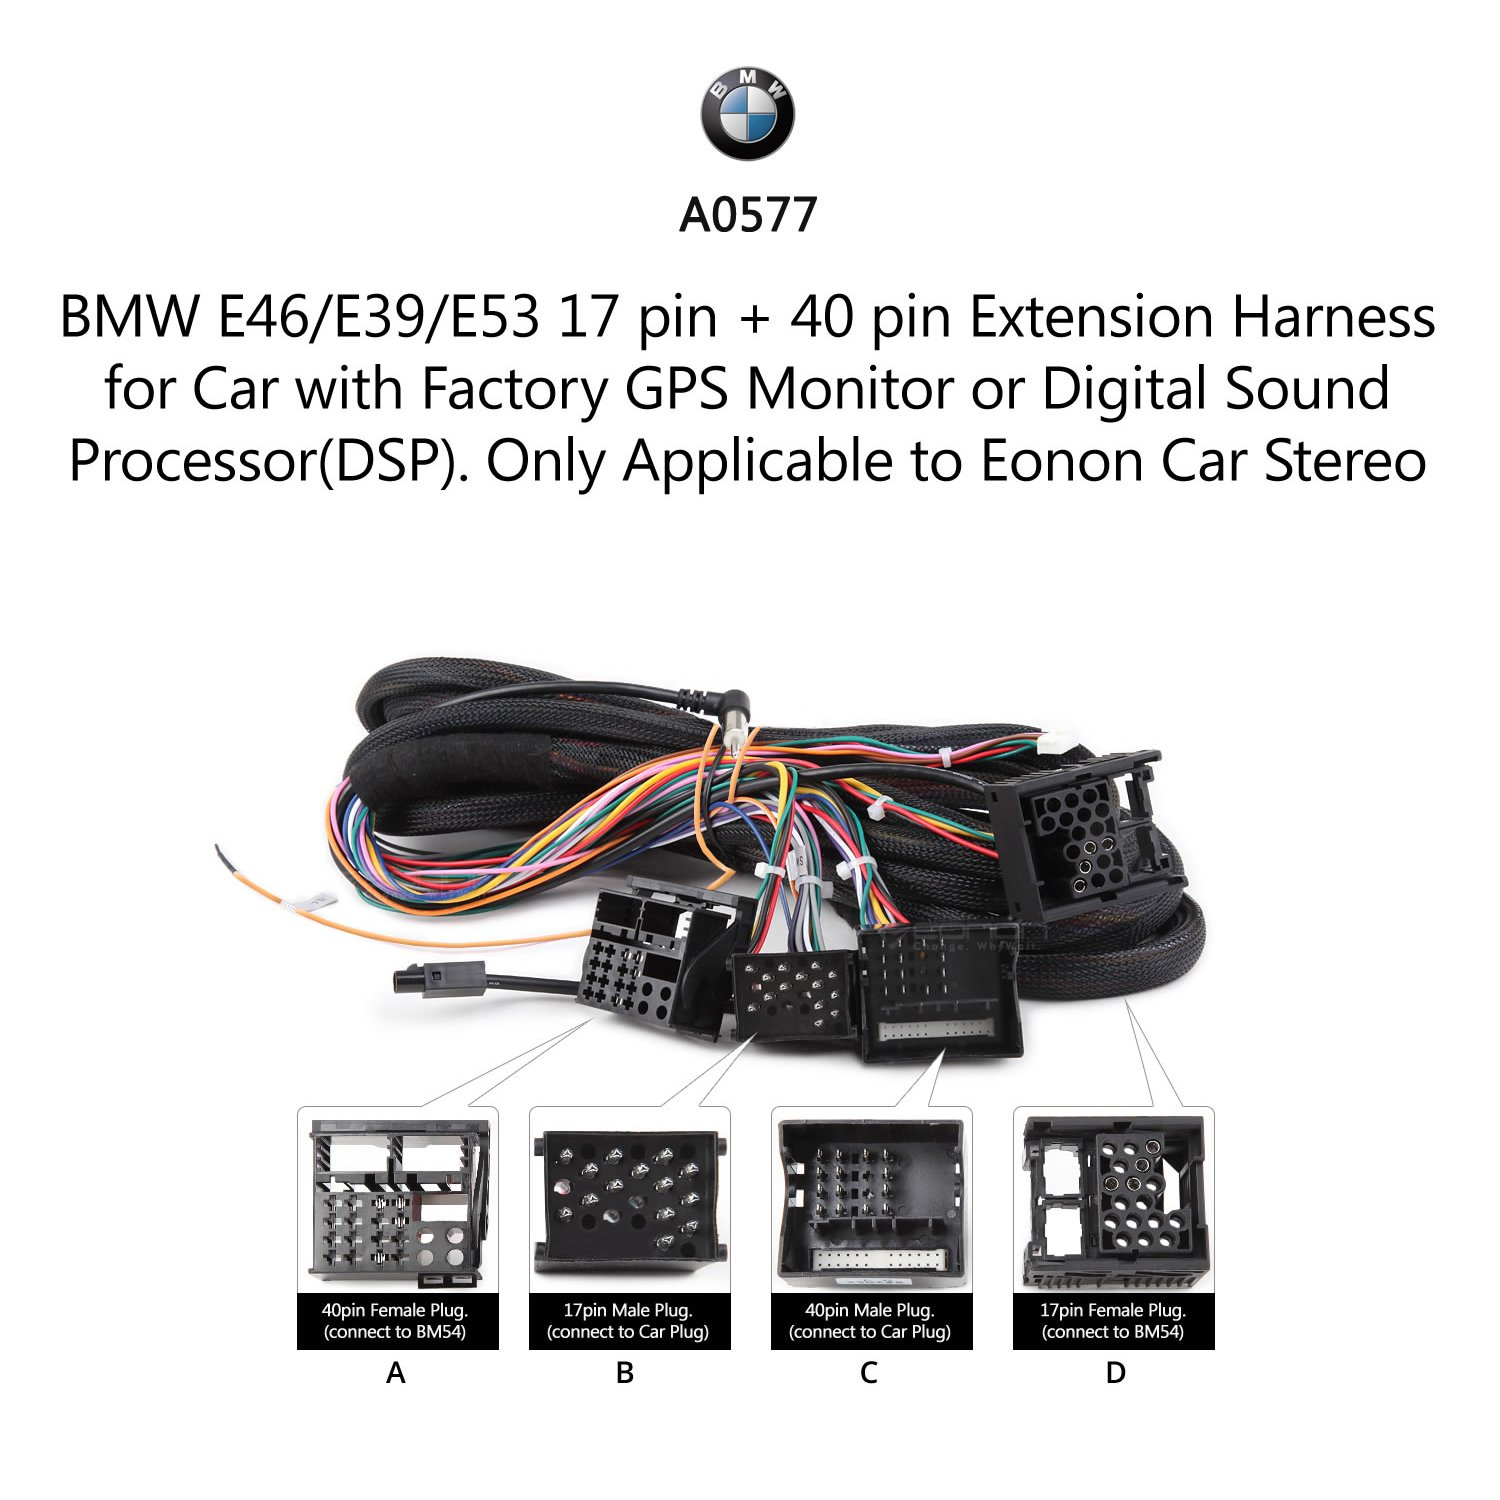 E46 Bmw 17 Pin Plug Wiring Wiring Diagram State Central B State Central B Gobep It